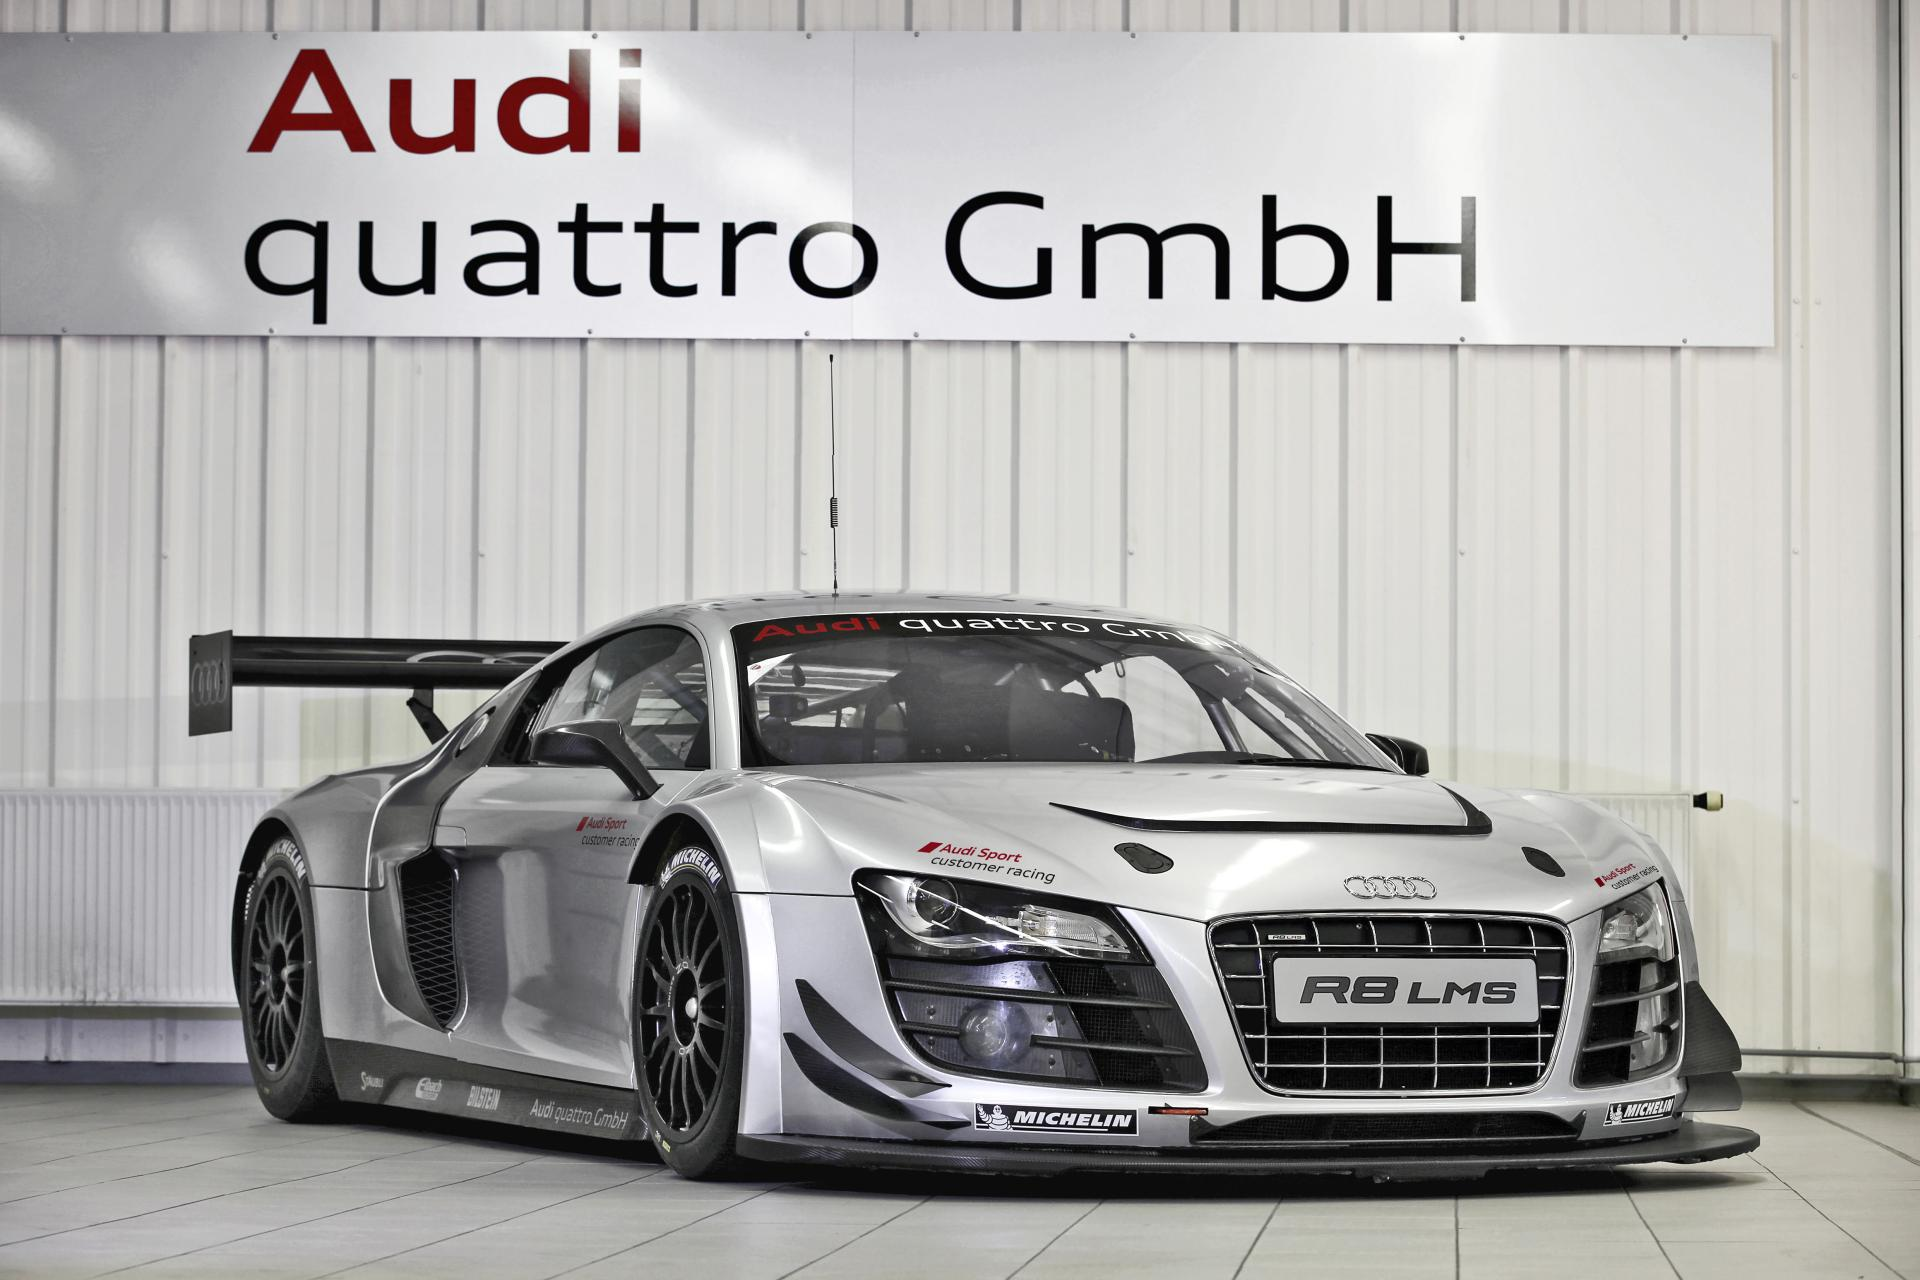 2012 Audi R8 LMS ultra News and Information, Research, and Pricing